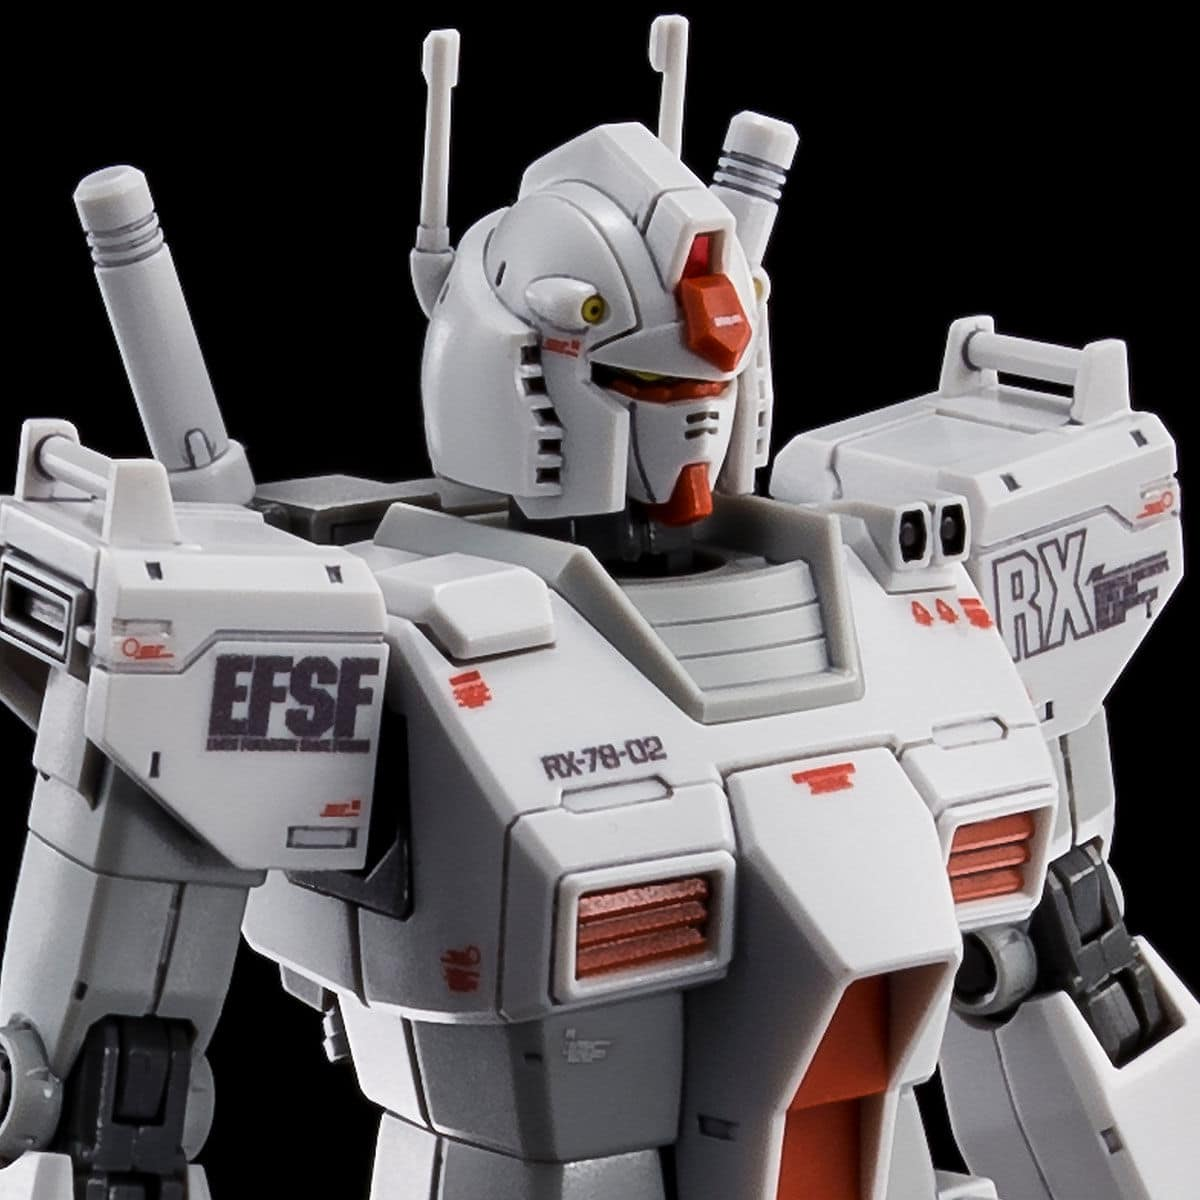 HG 1/144 RX-78-02 Gundam Rollout Color (Gundam The Origin Ver.) Gunpla Kits 2021